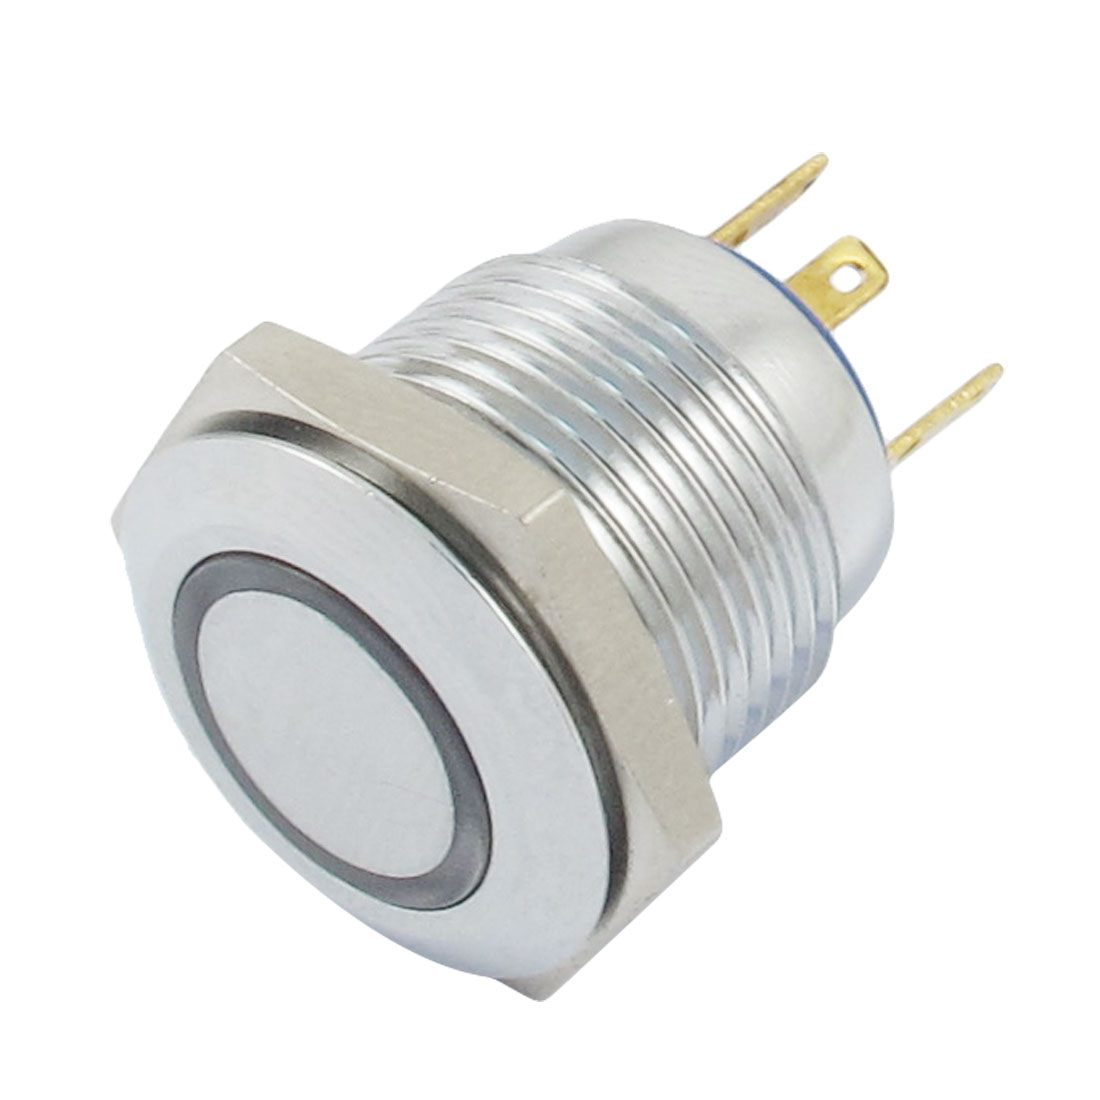 AC 250V 3A 12V Blue Lamp Flat Round Momentary Metal Push Button Switch